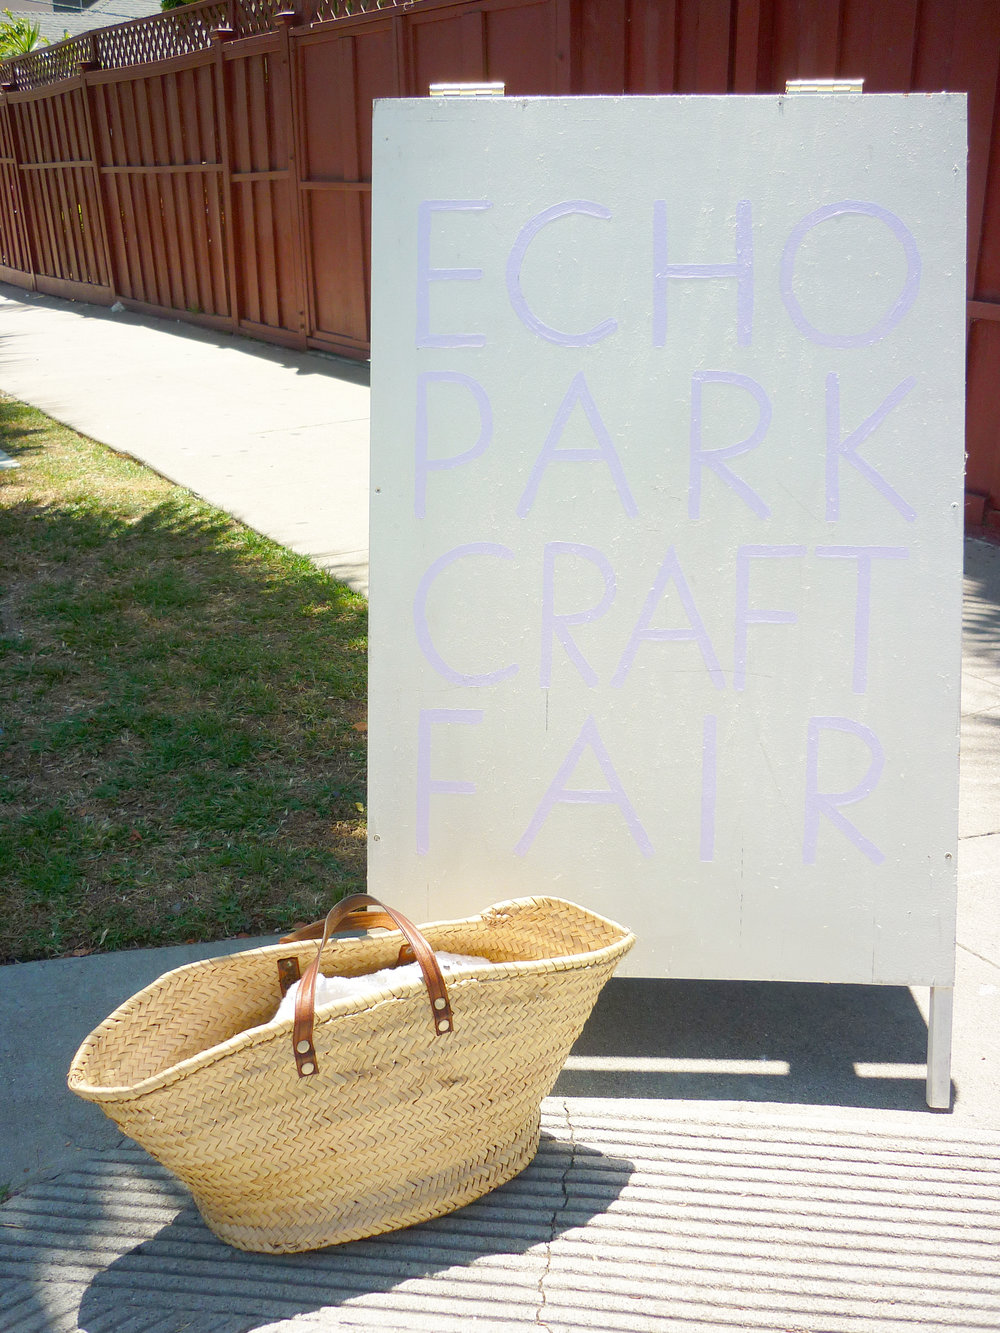 Echo Park Craft Fair Spring 2017 - Los Angeles - The LA Bliss